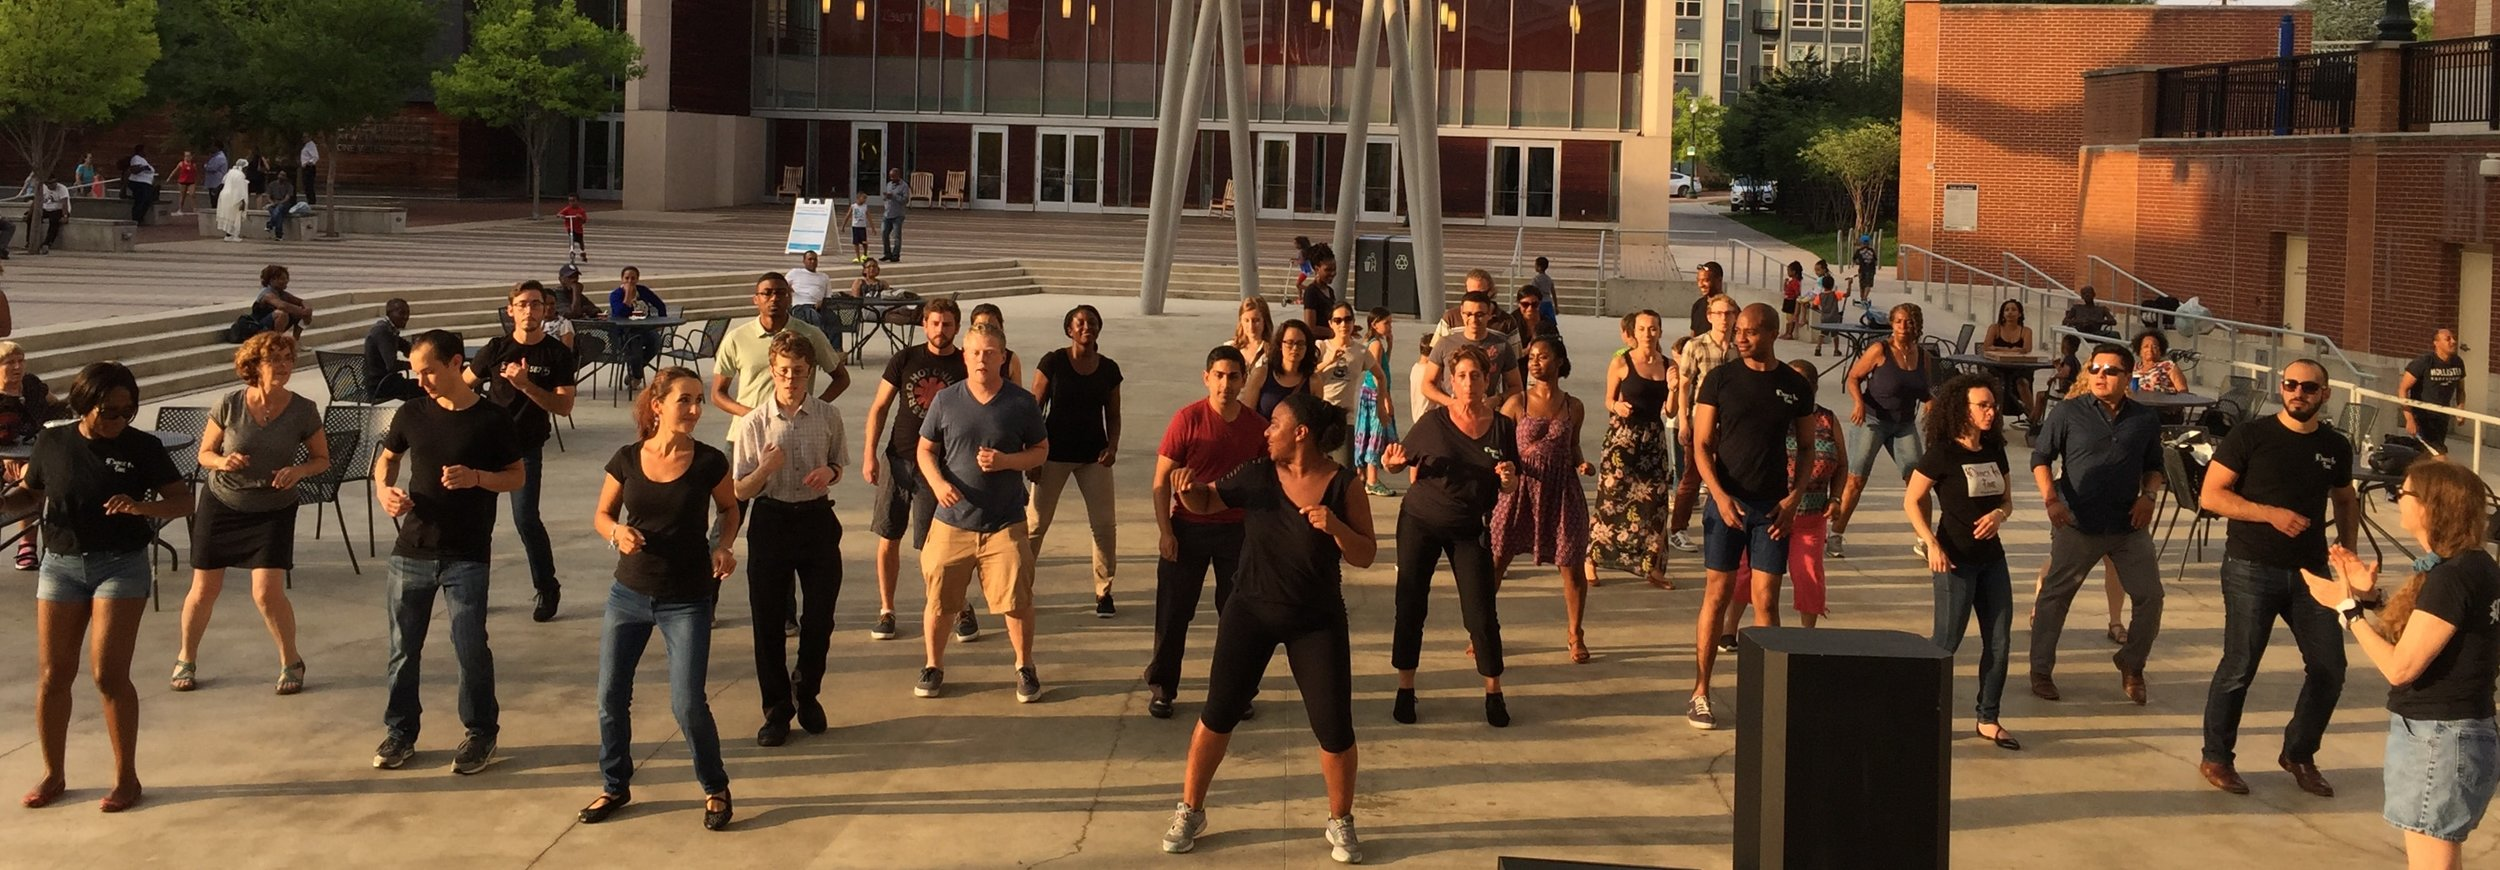 Copy of Salsa Footwork Lesson at Veteran's Plaza in Silver Spring, MD